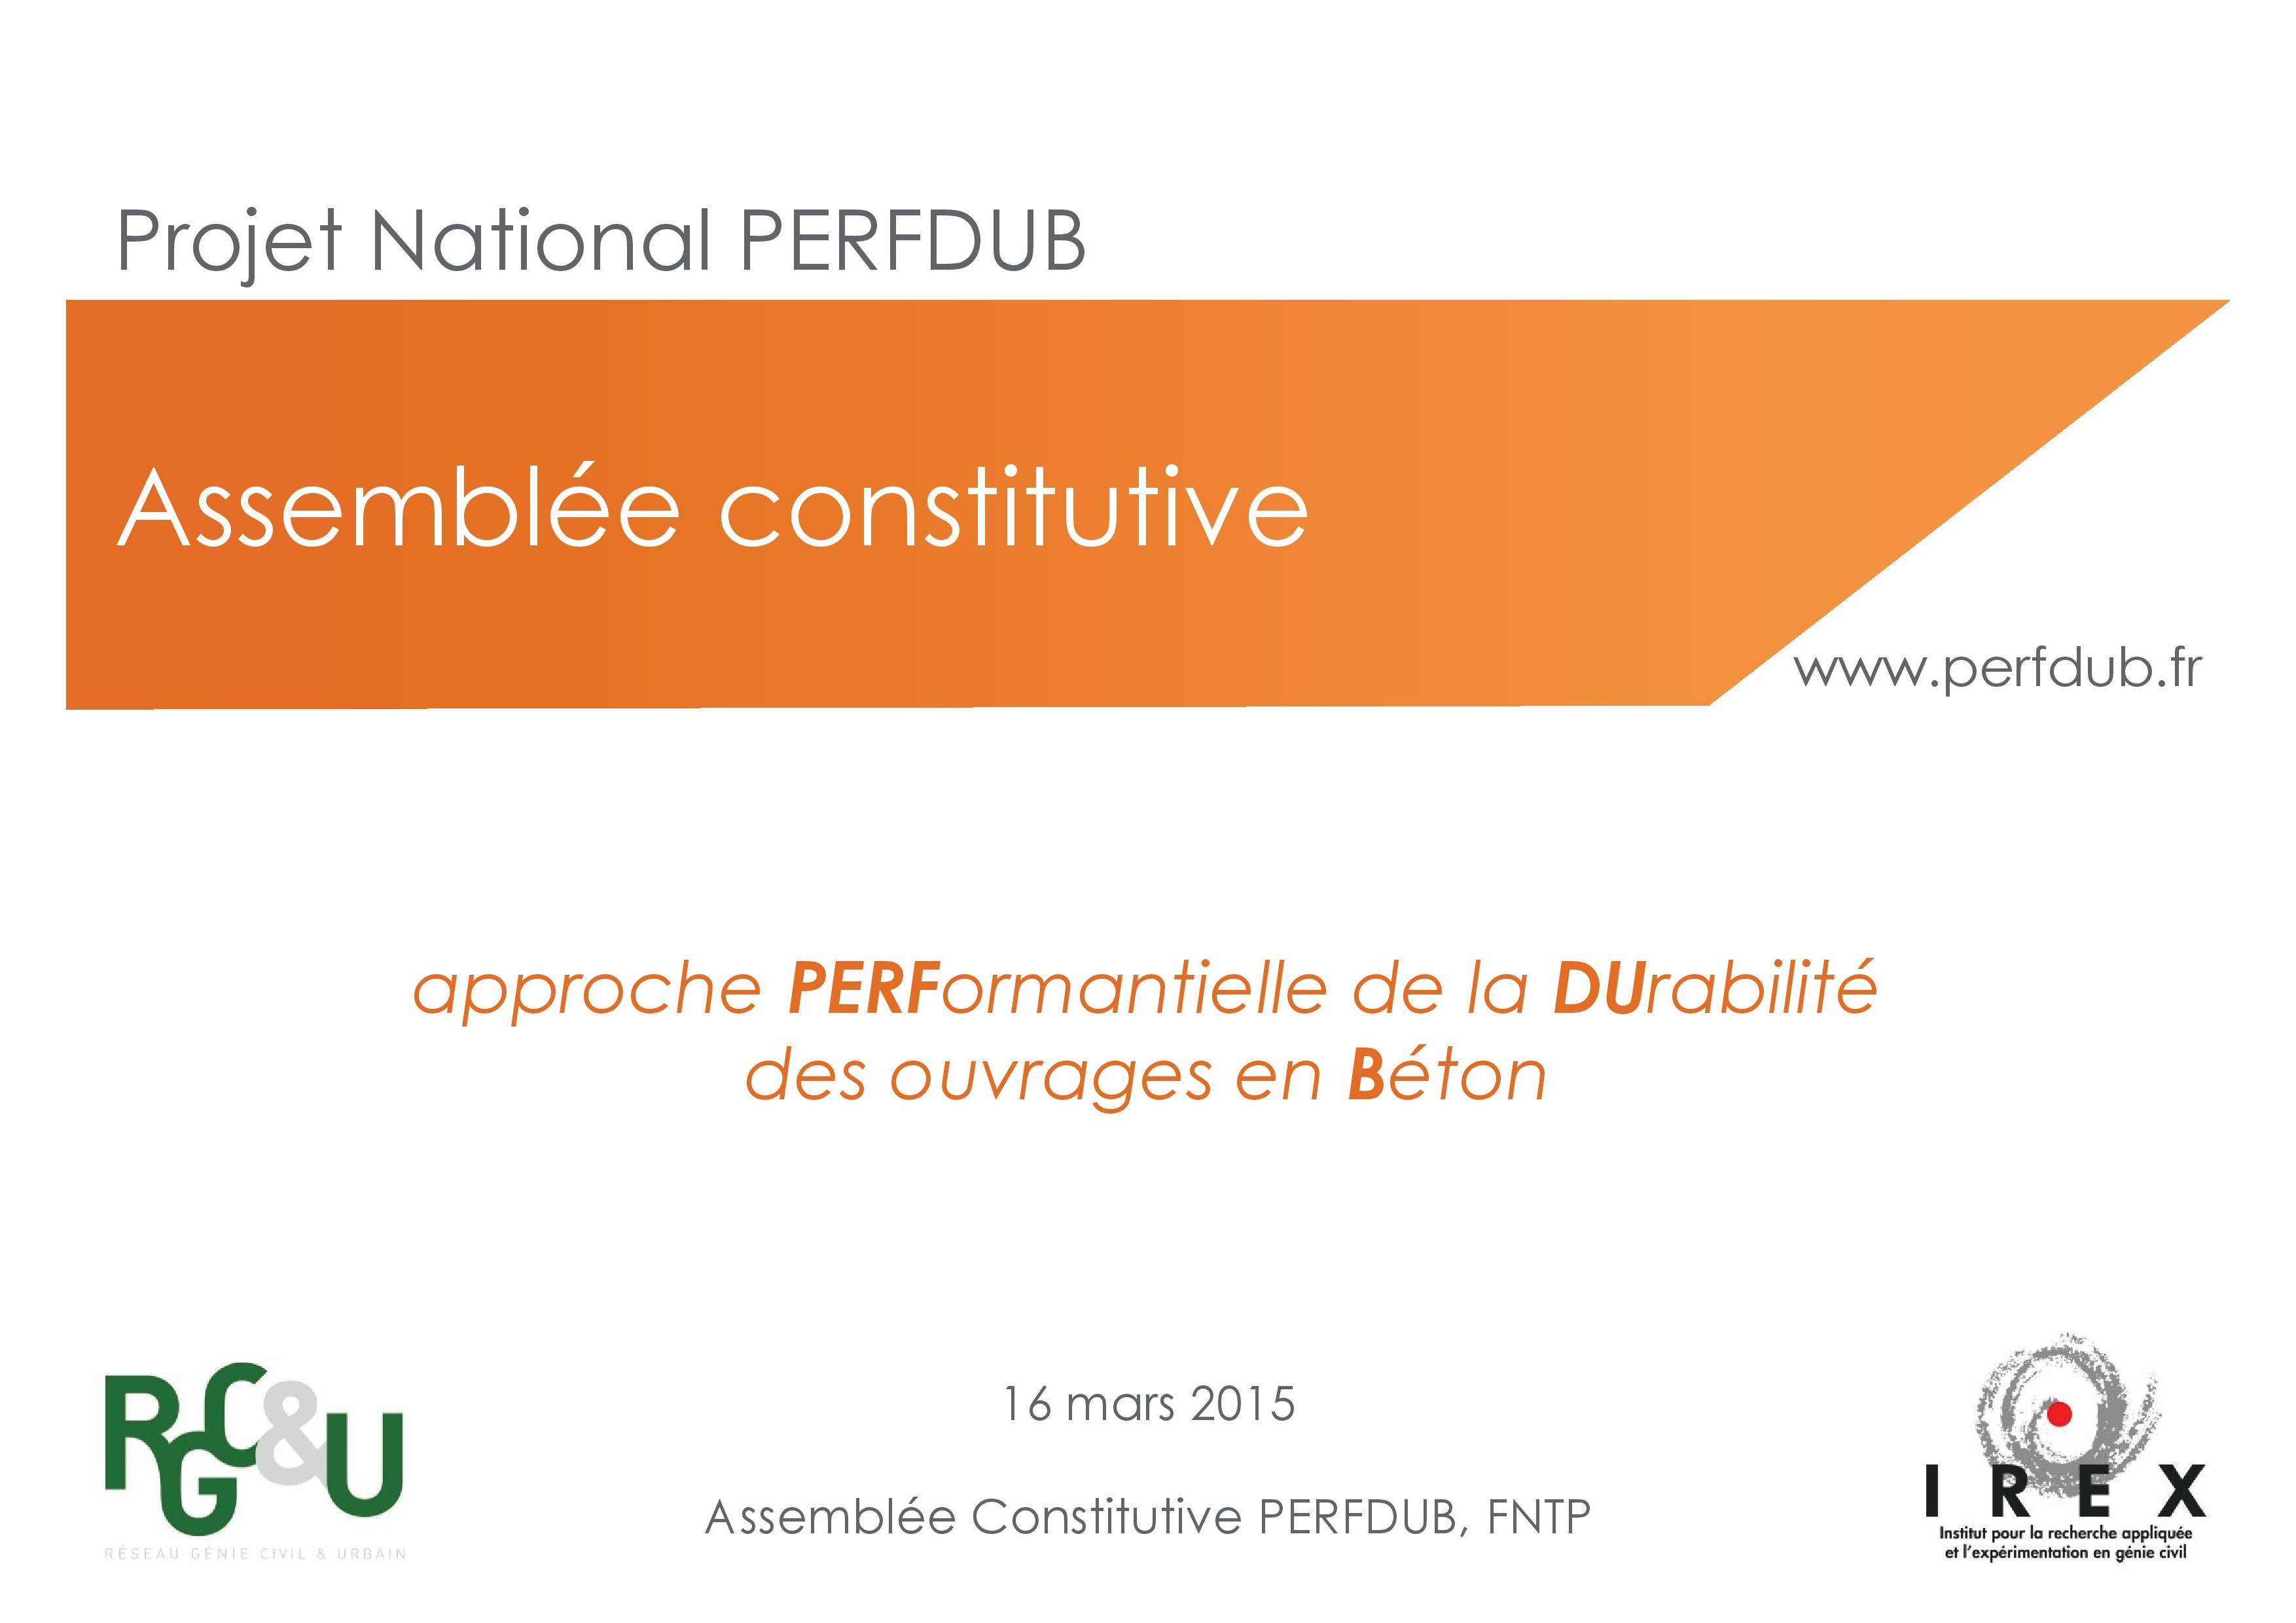 National Project PERFDUB is launched